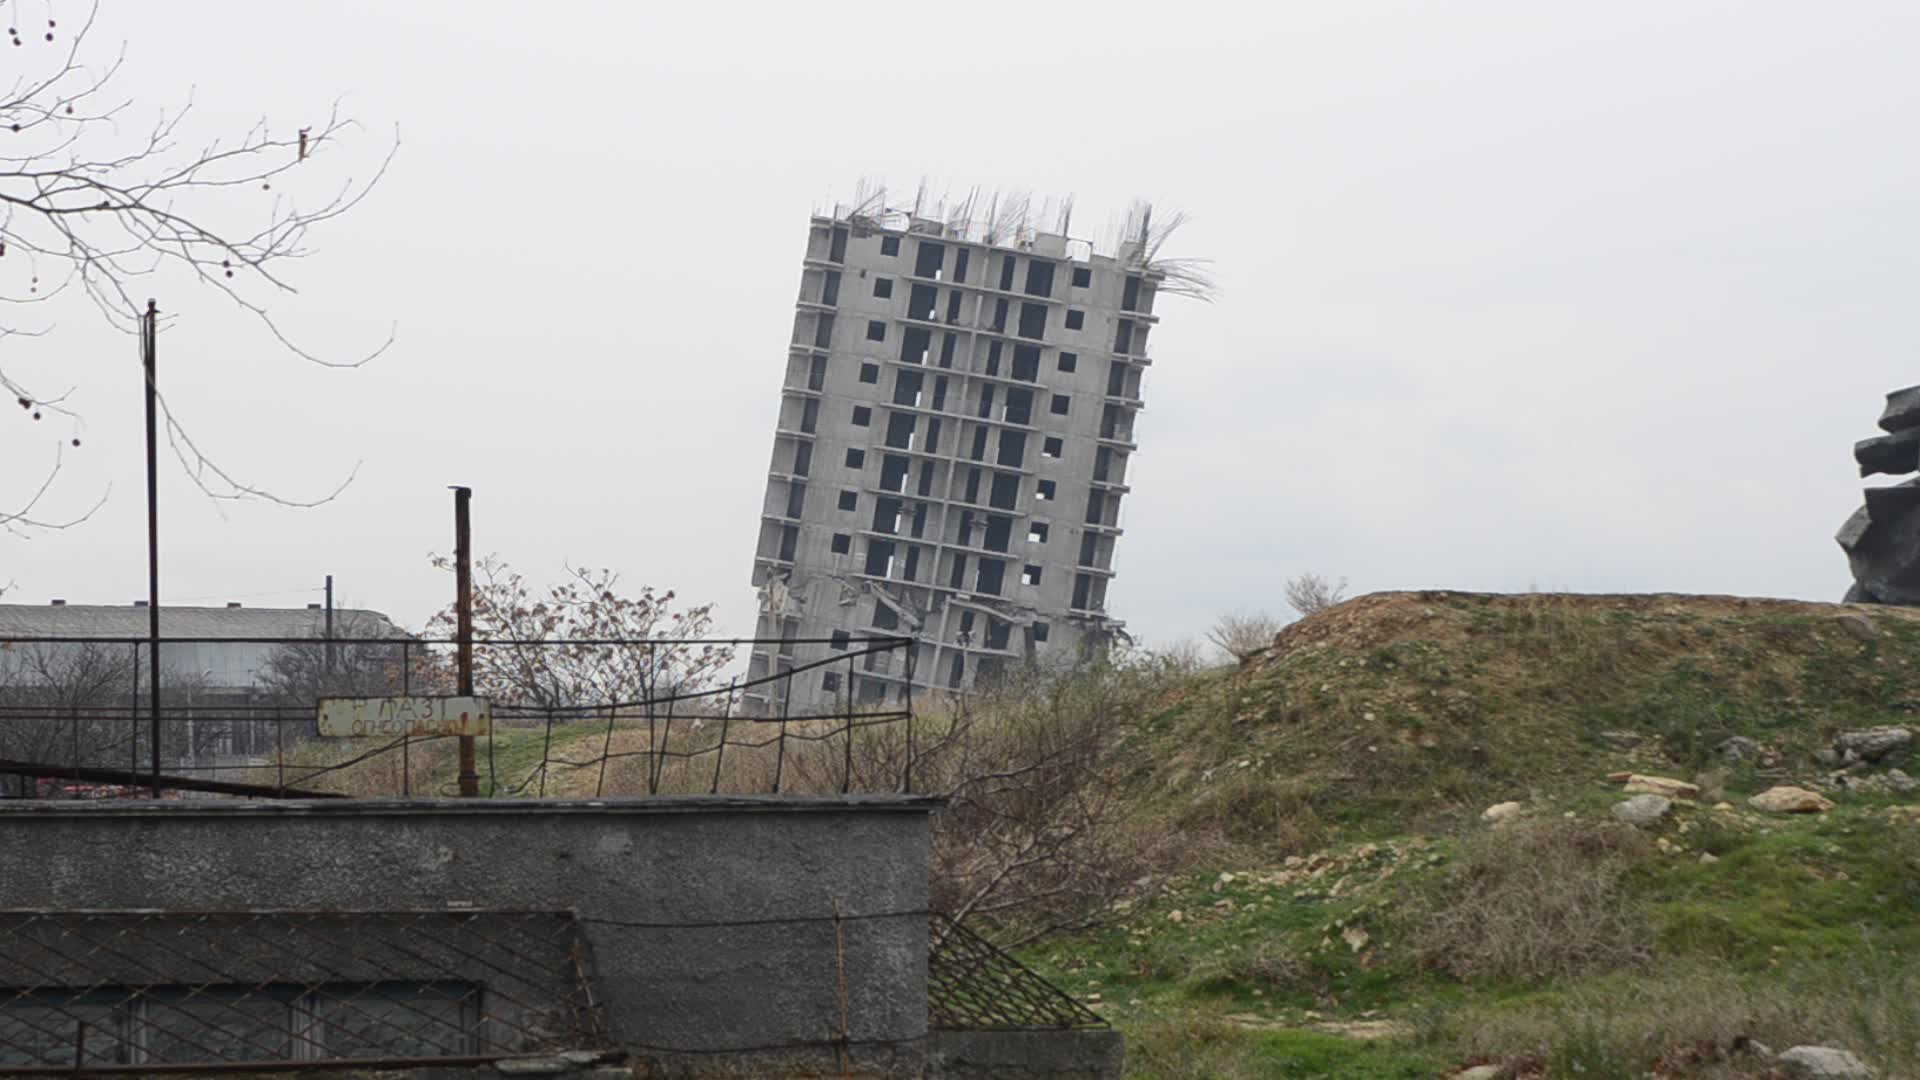 Building Blowing Up : Blowing up a building in sevastopol rumble